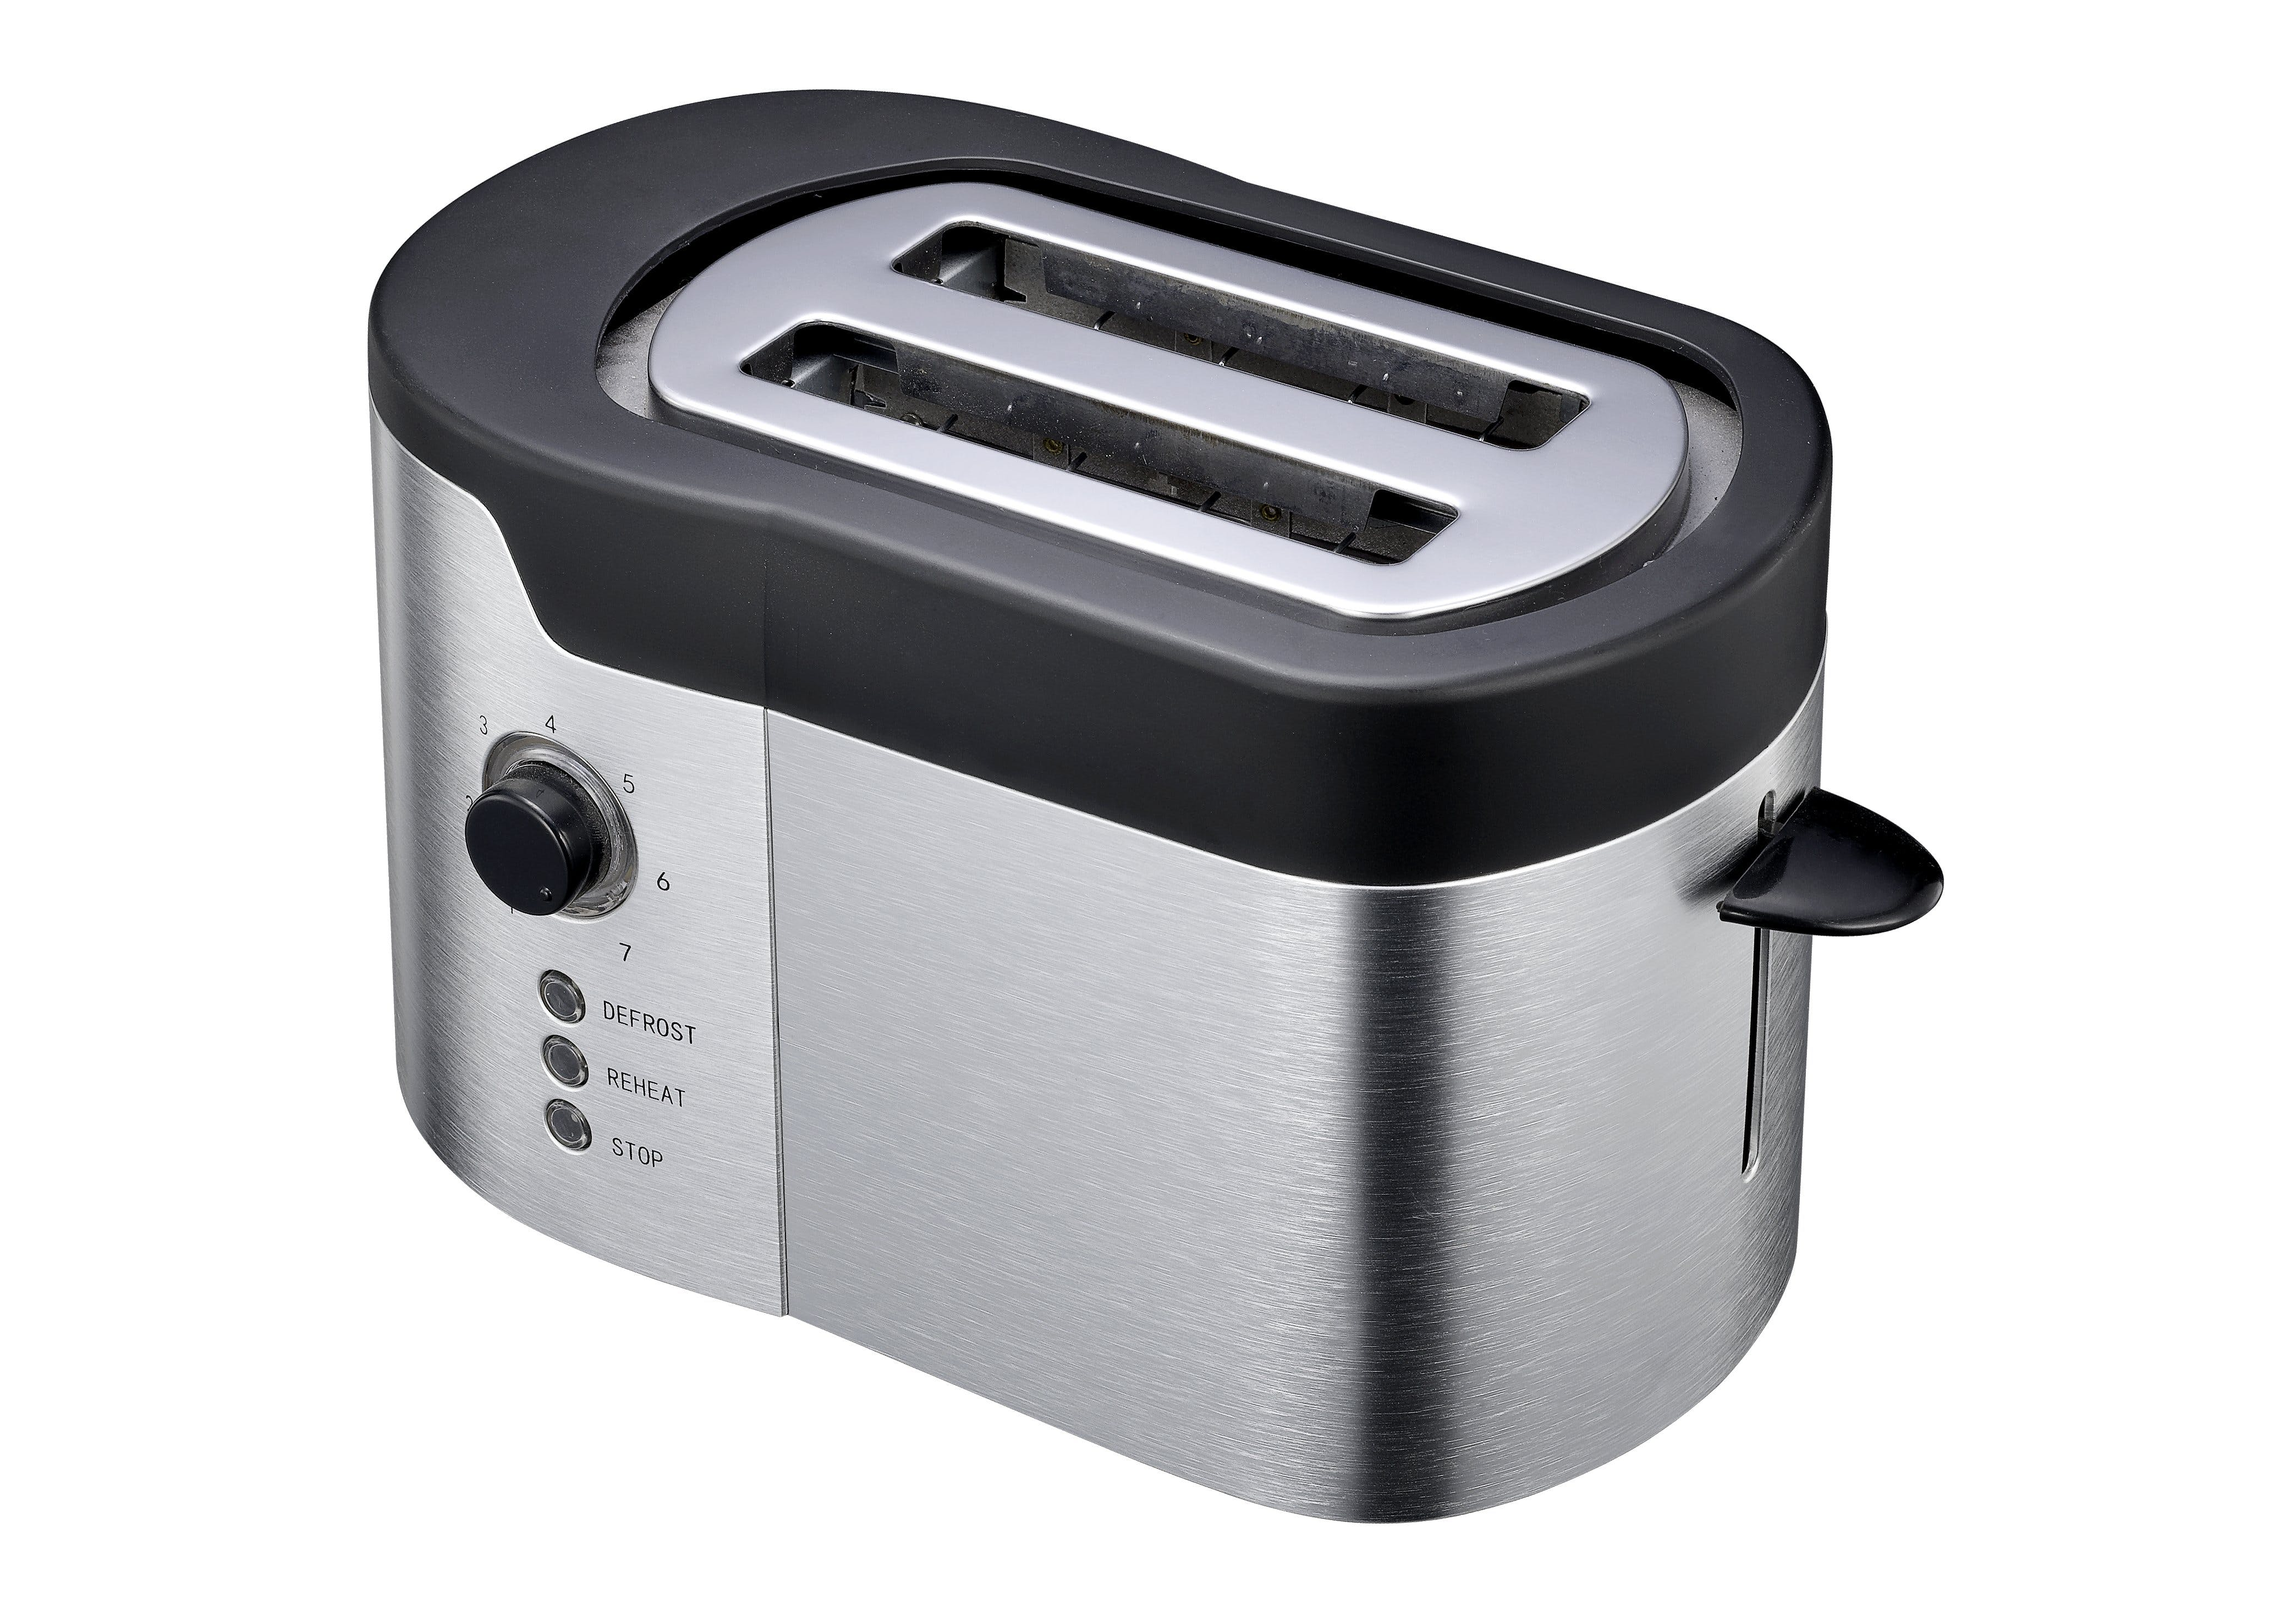 Free stock photo of toaster, electric appliance, kitchen appliance